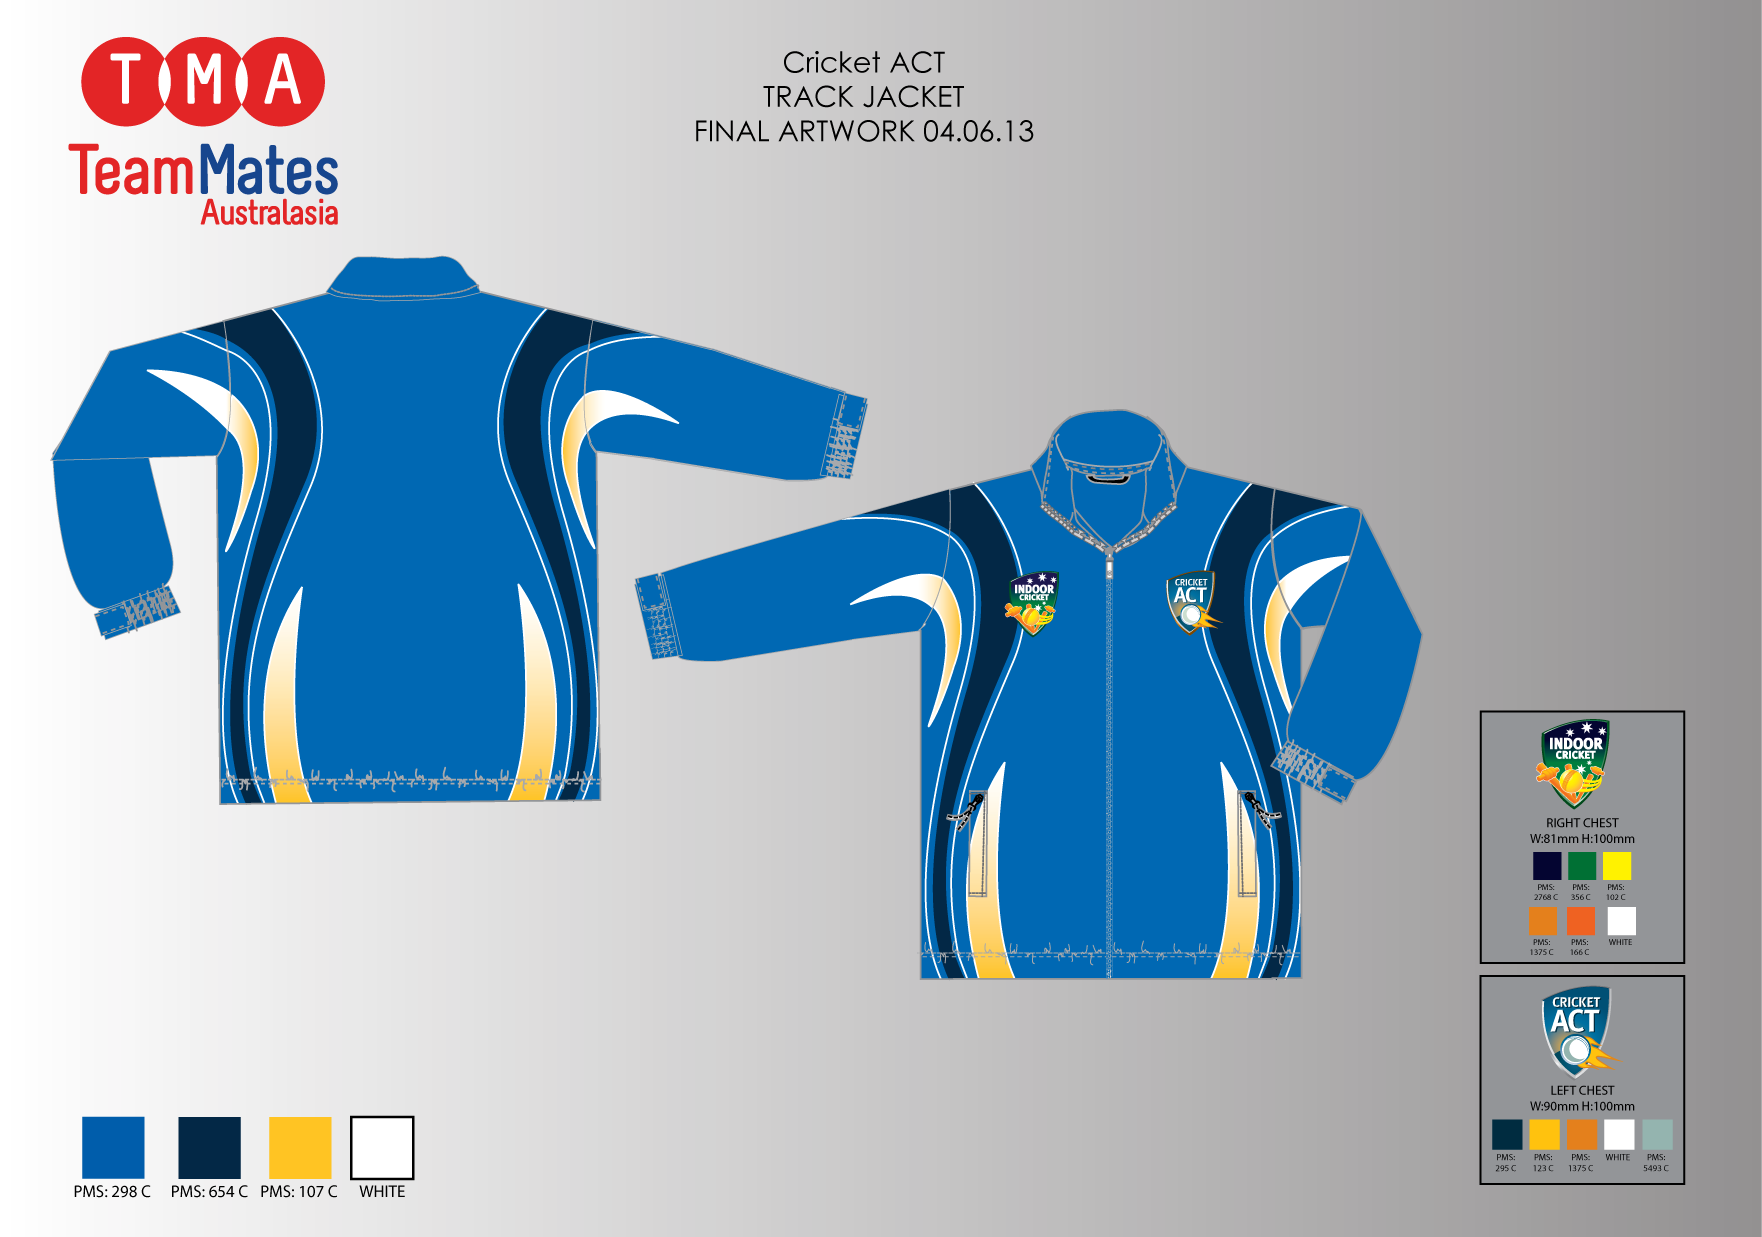 Artwork for the ACT Indoor Cricket State team tracksuit top